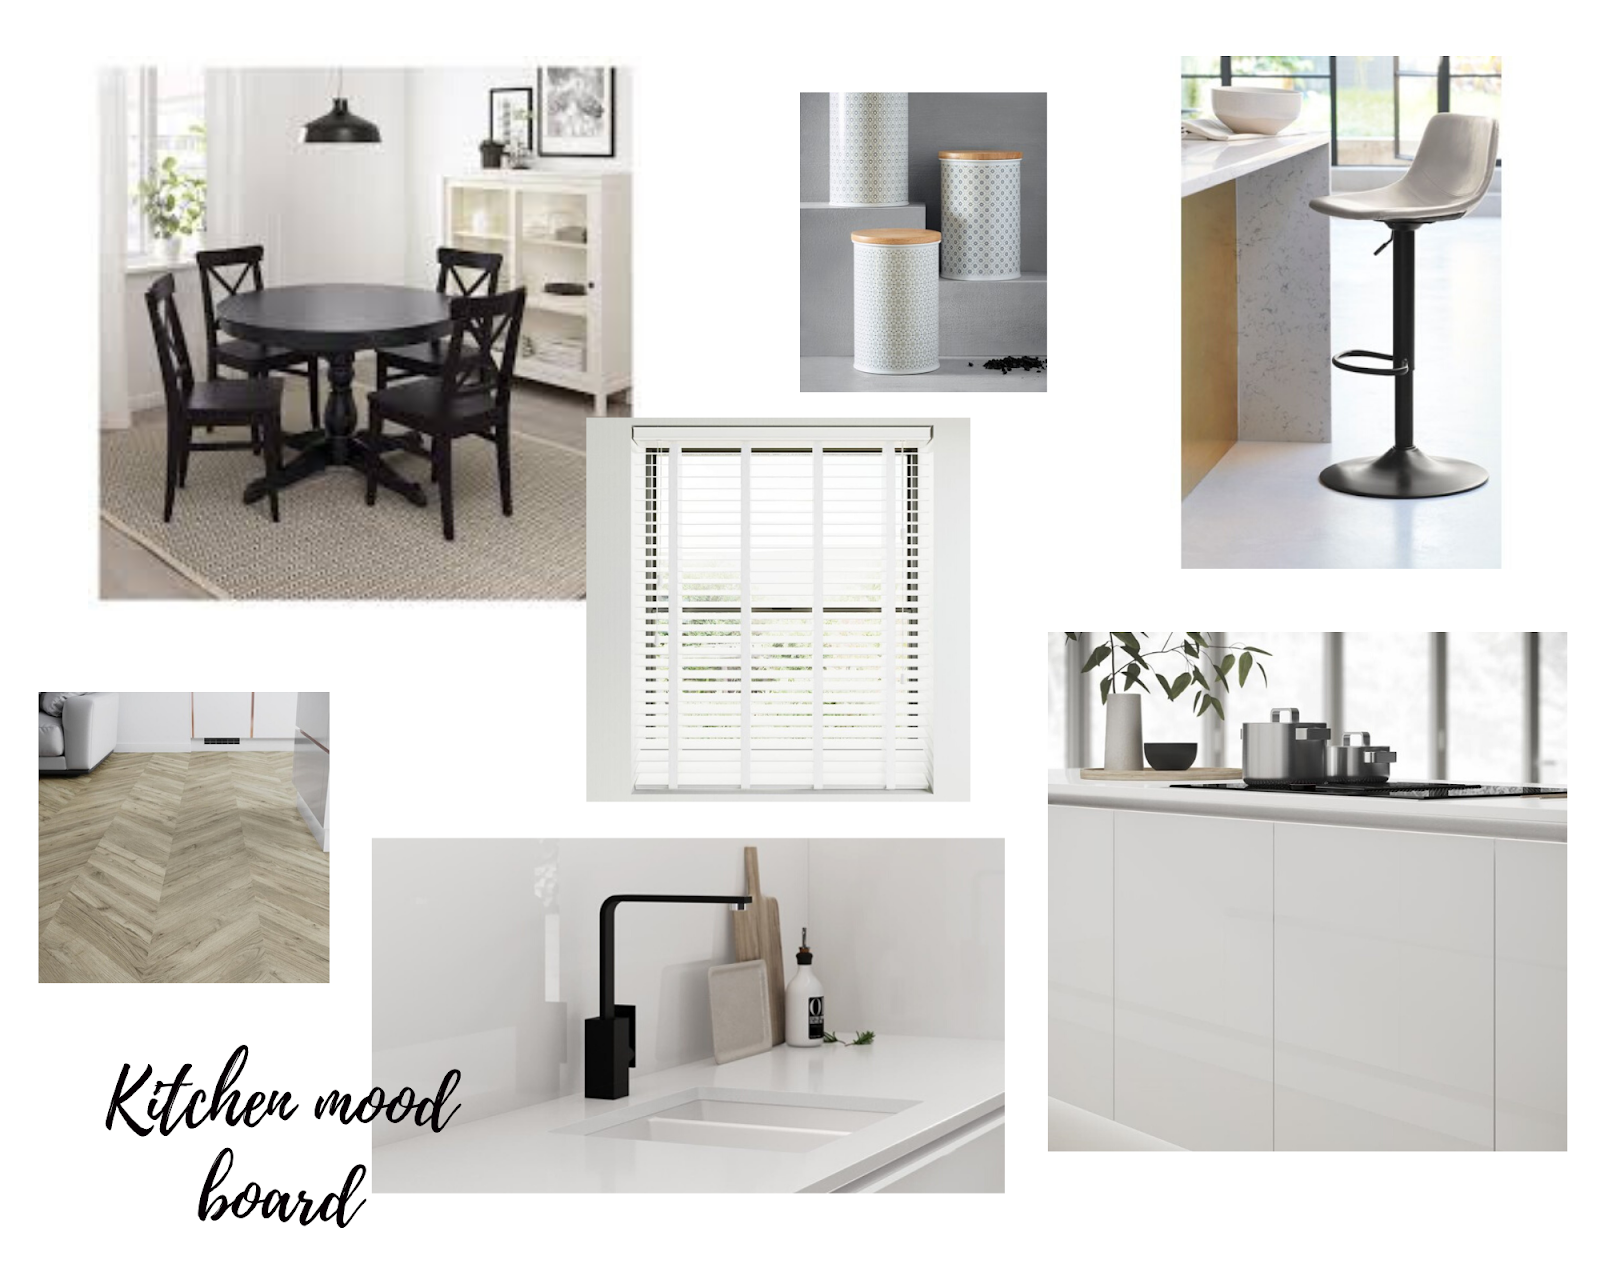 Kitchen re-design moodboard